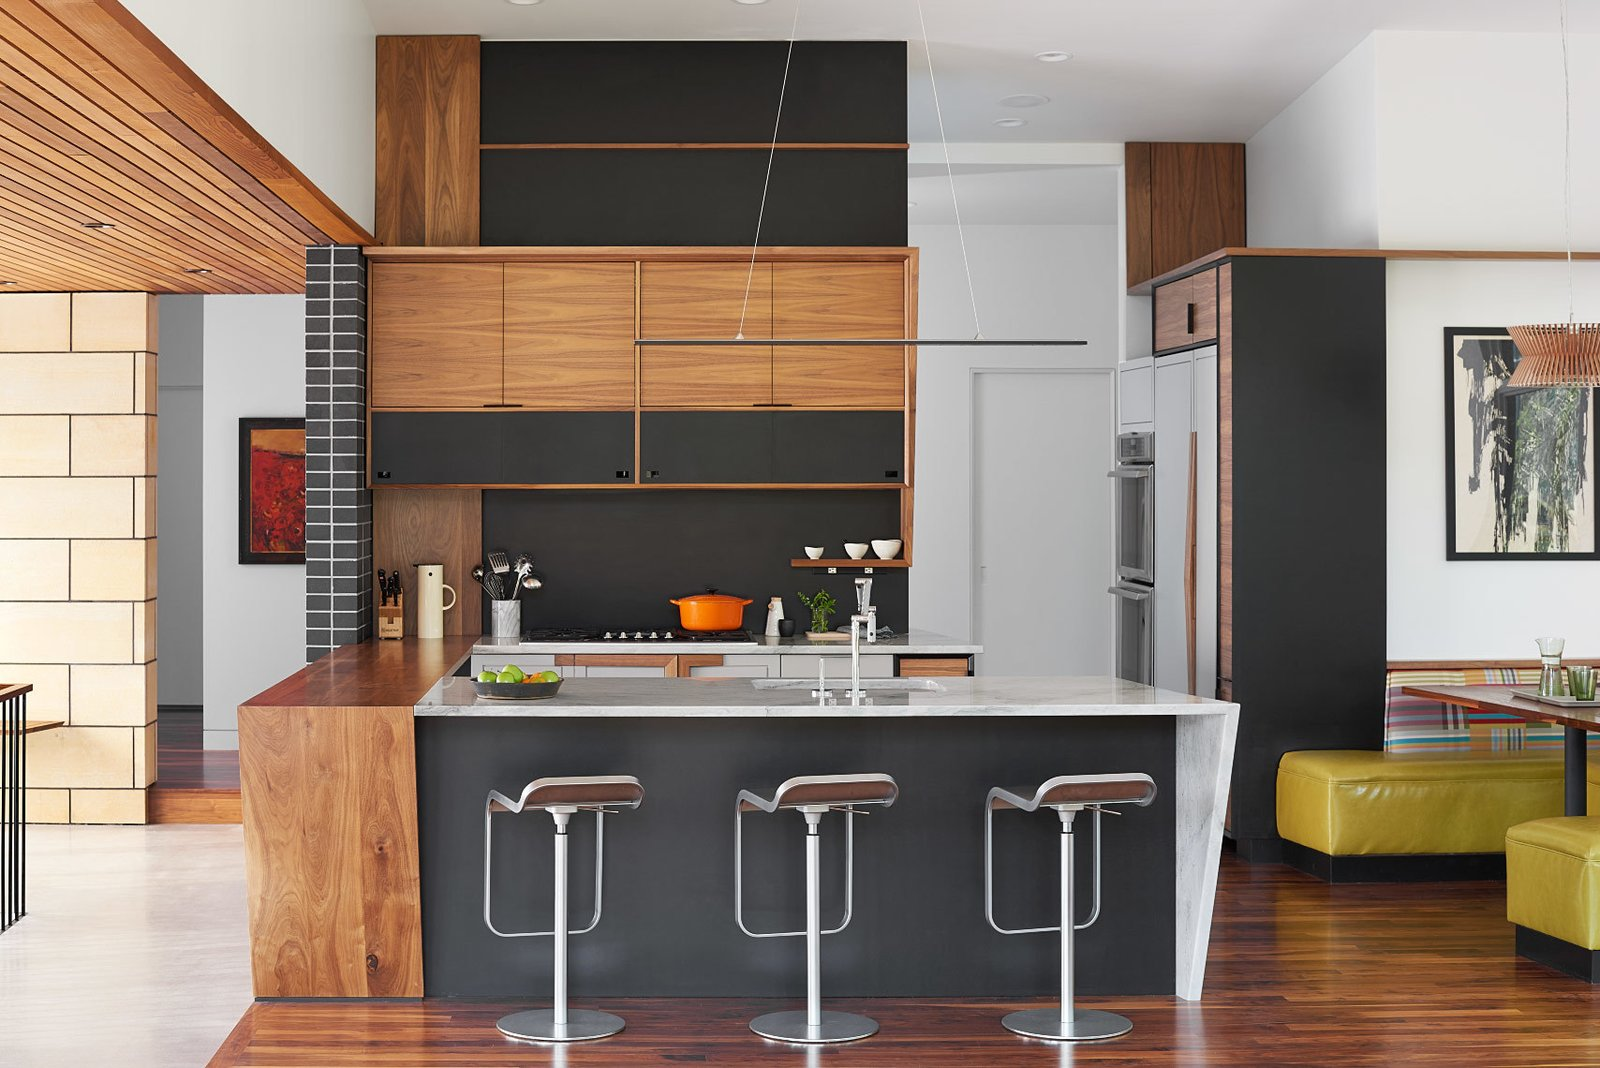 Tagged: Kitchen, Marble, Wood, Wood, Metal, Medium Hardwood, Concrete, Metal, Ceiling, Pendant, Accent, Recessed, Refrigerator, Wall Oven, Cooktops, and Undermount.  Best Kitchen Metal Medium Hardwood Photos from Theodore Wirth Ranch